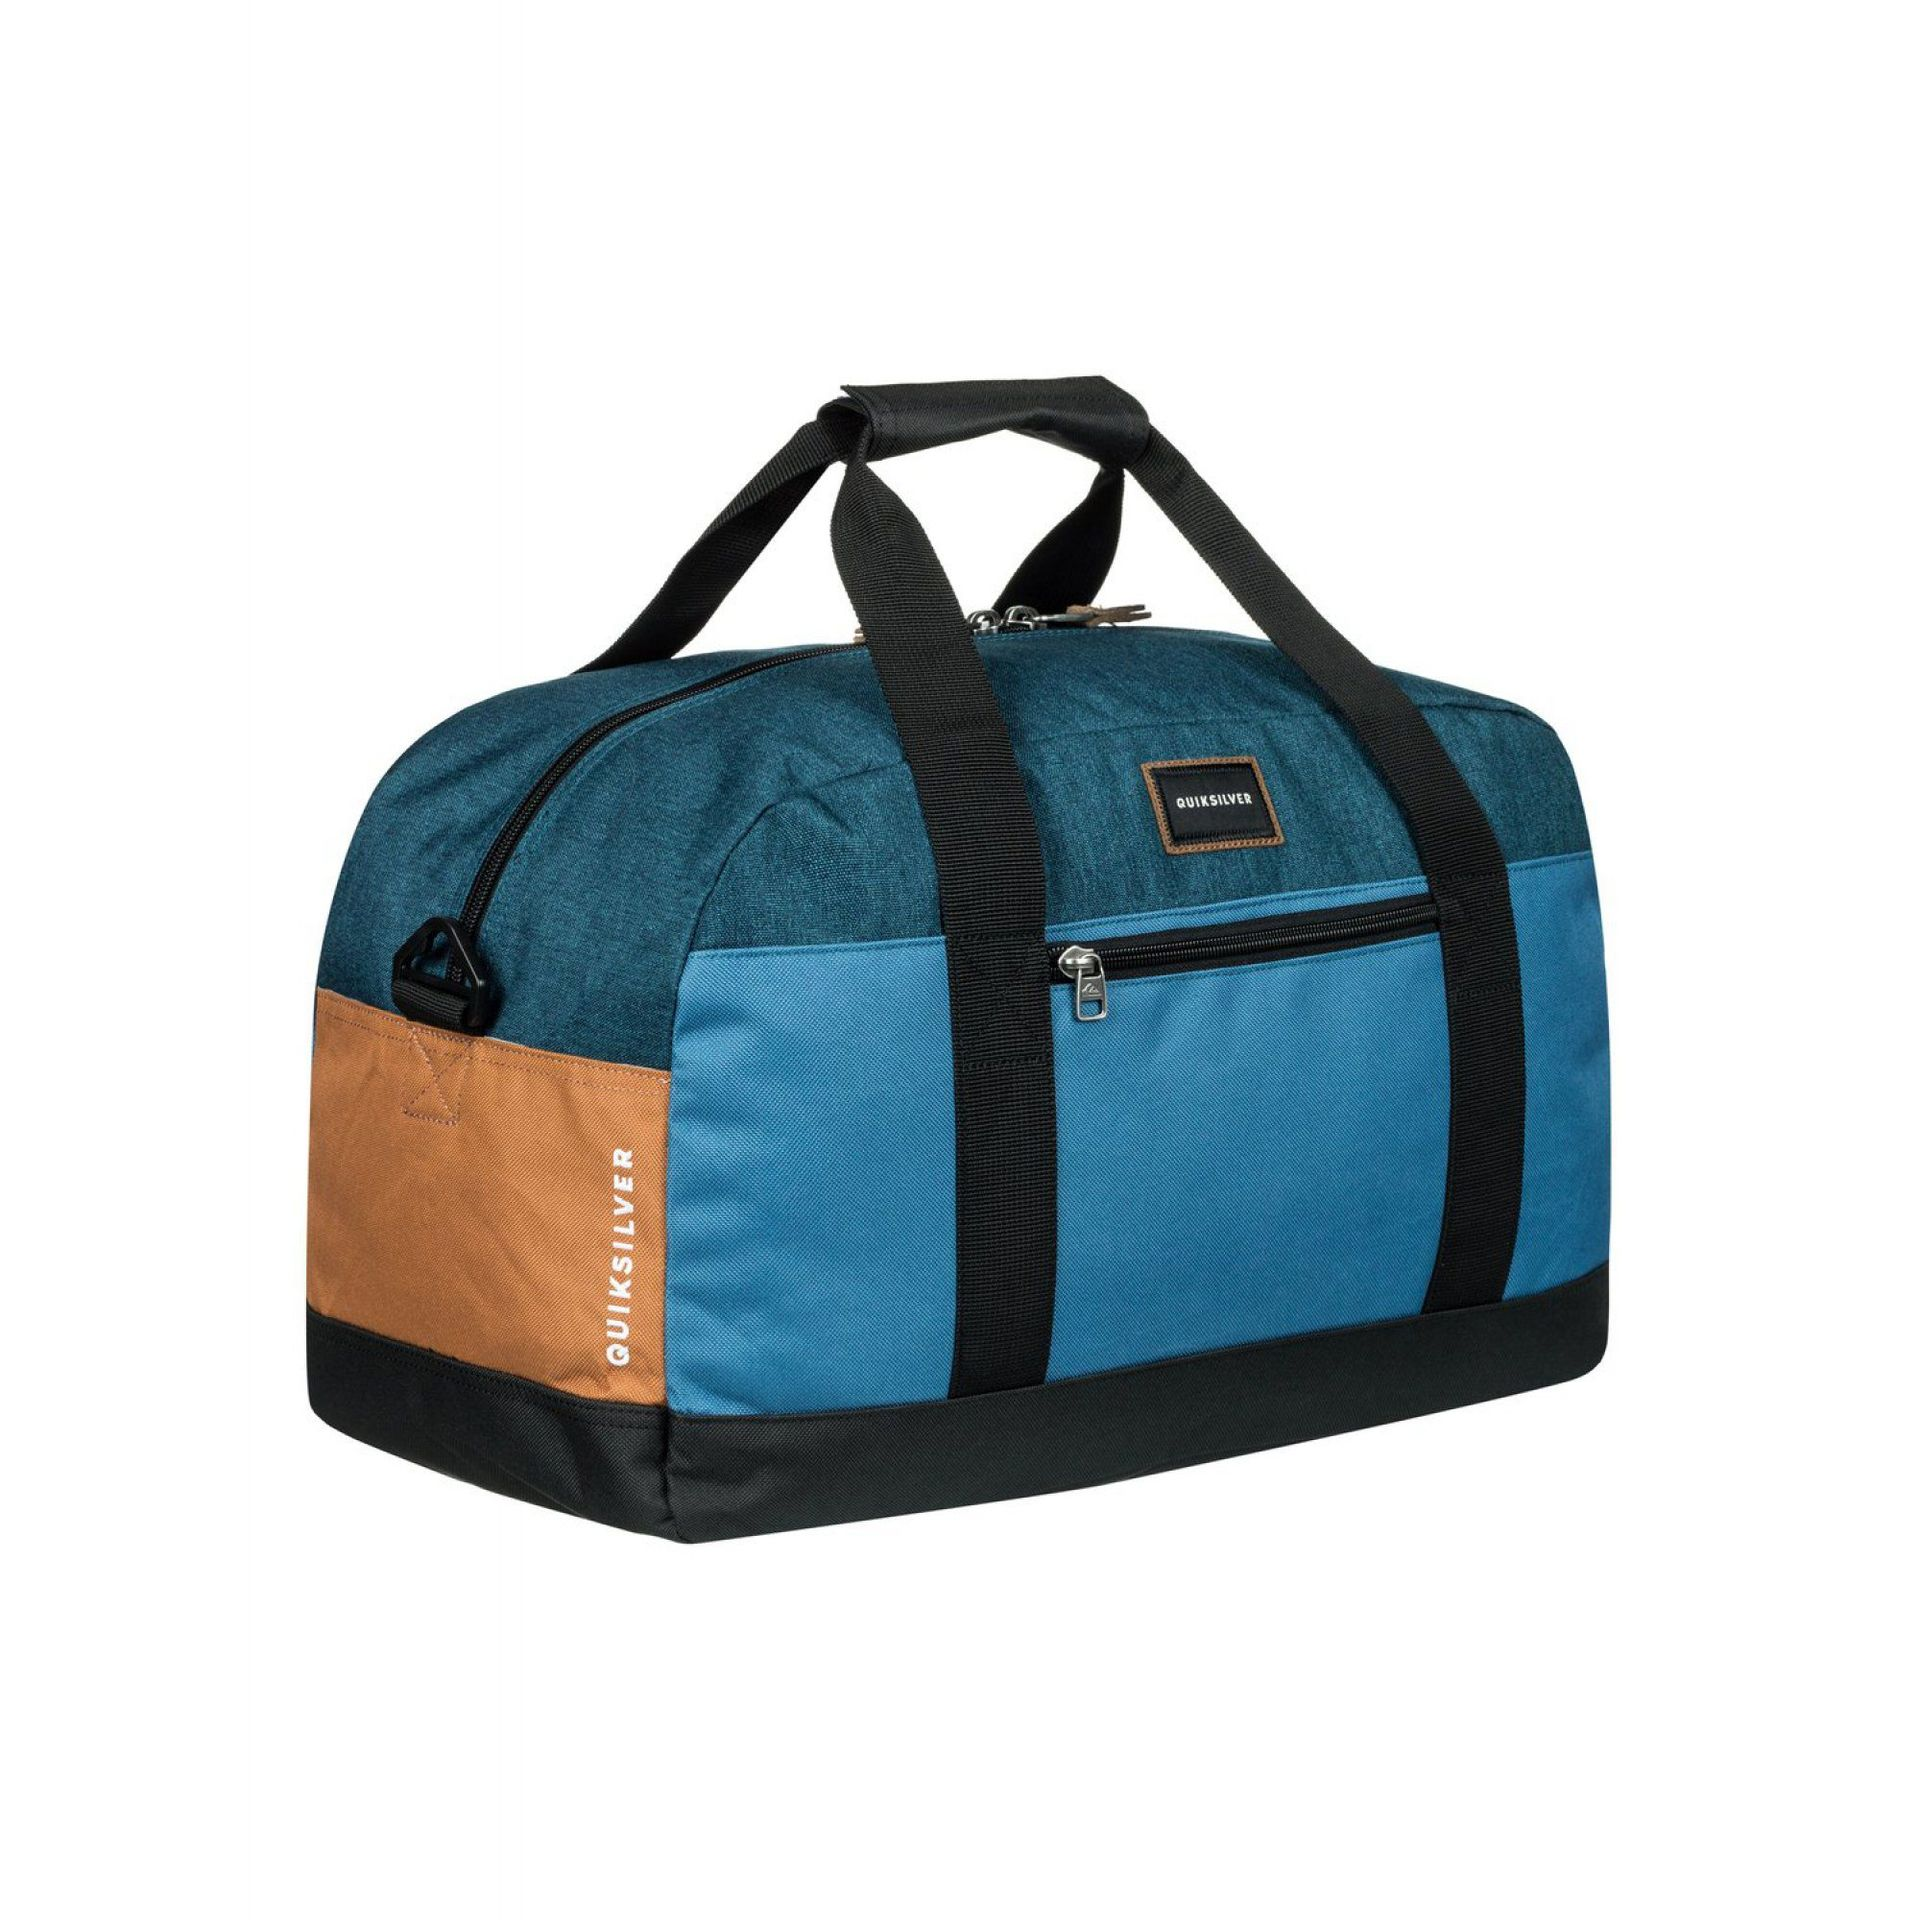 TORBA QUIKSILVER SMALL SHELTER BLUE NIGHTS HEATHER 1